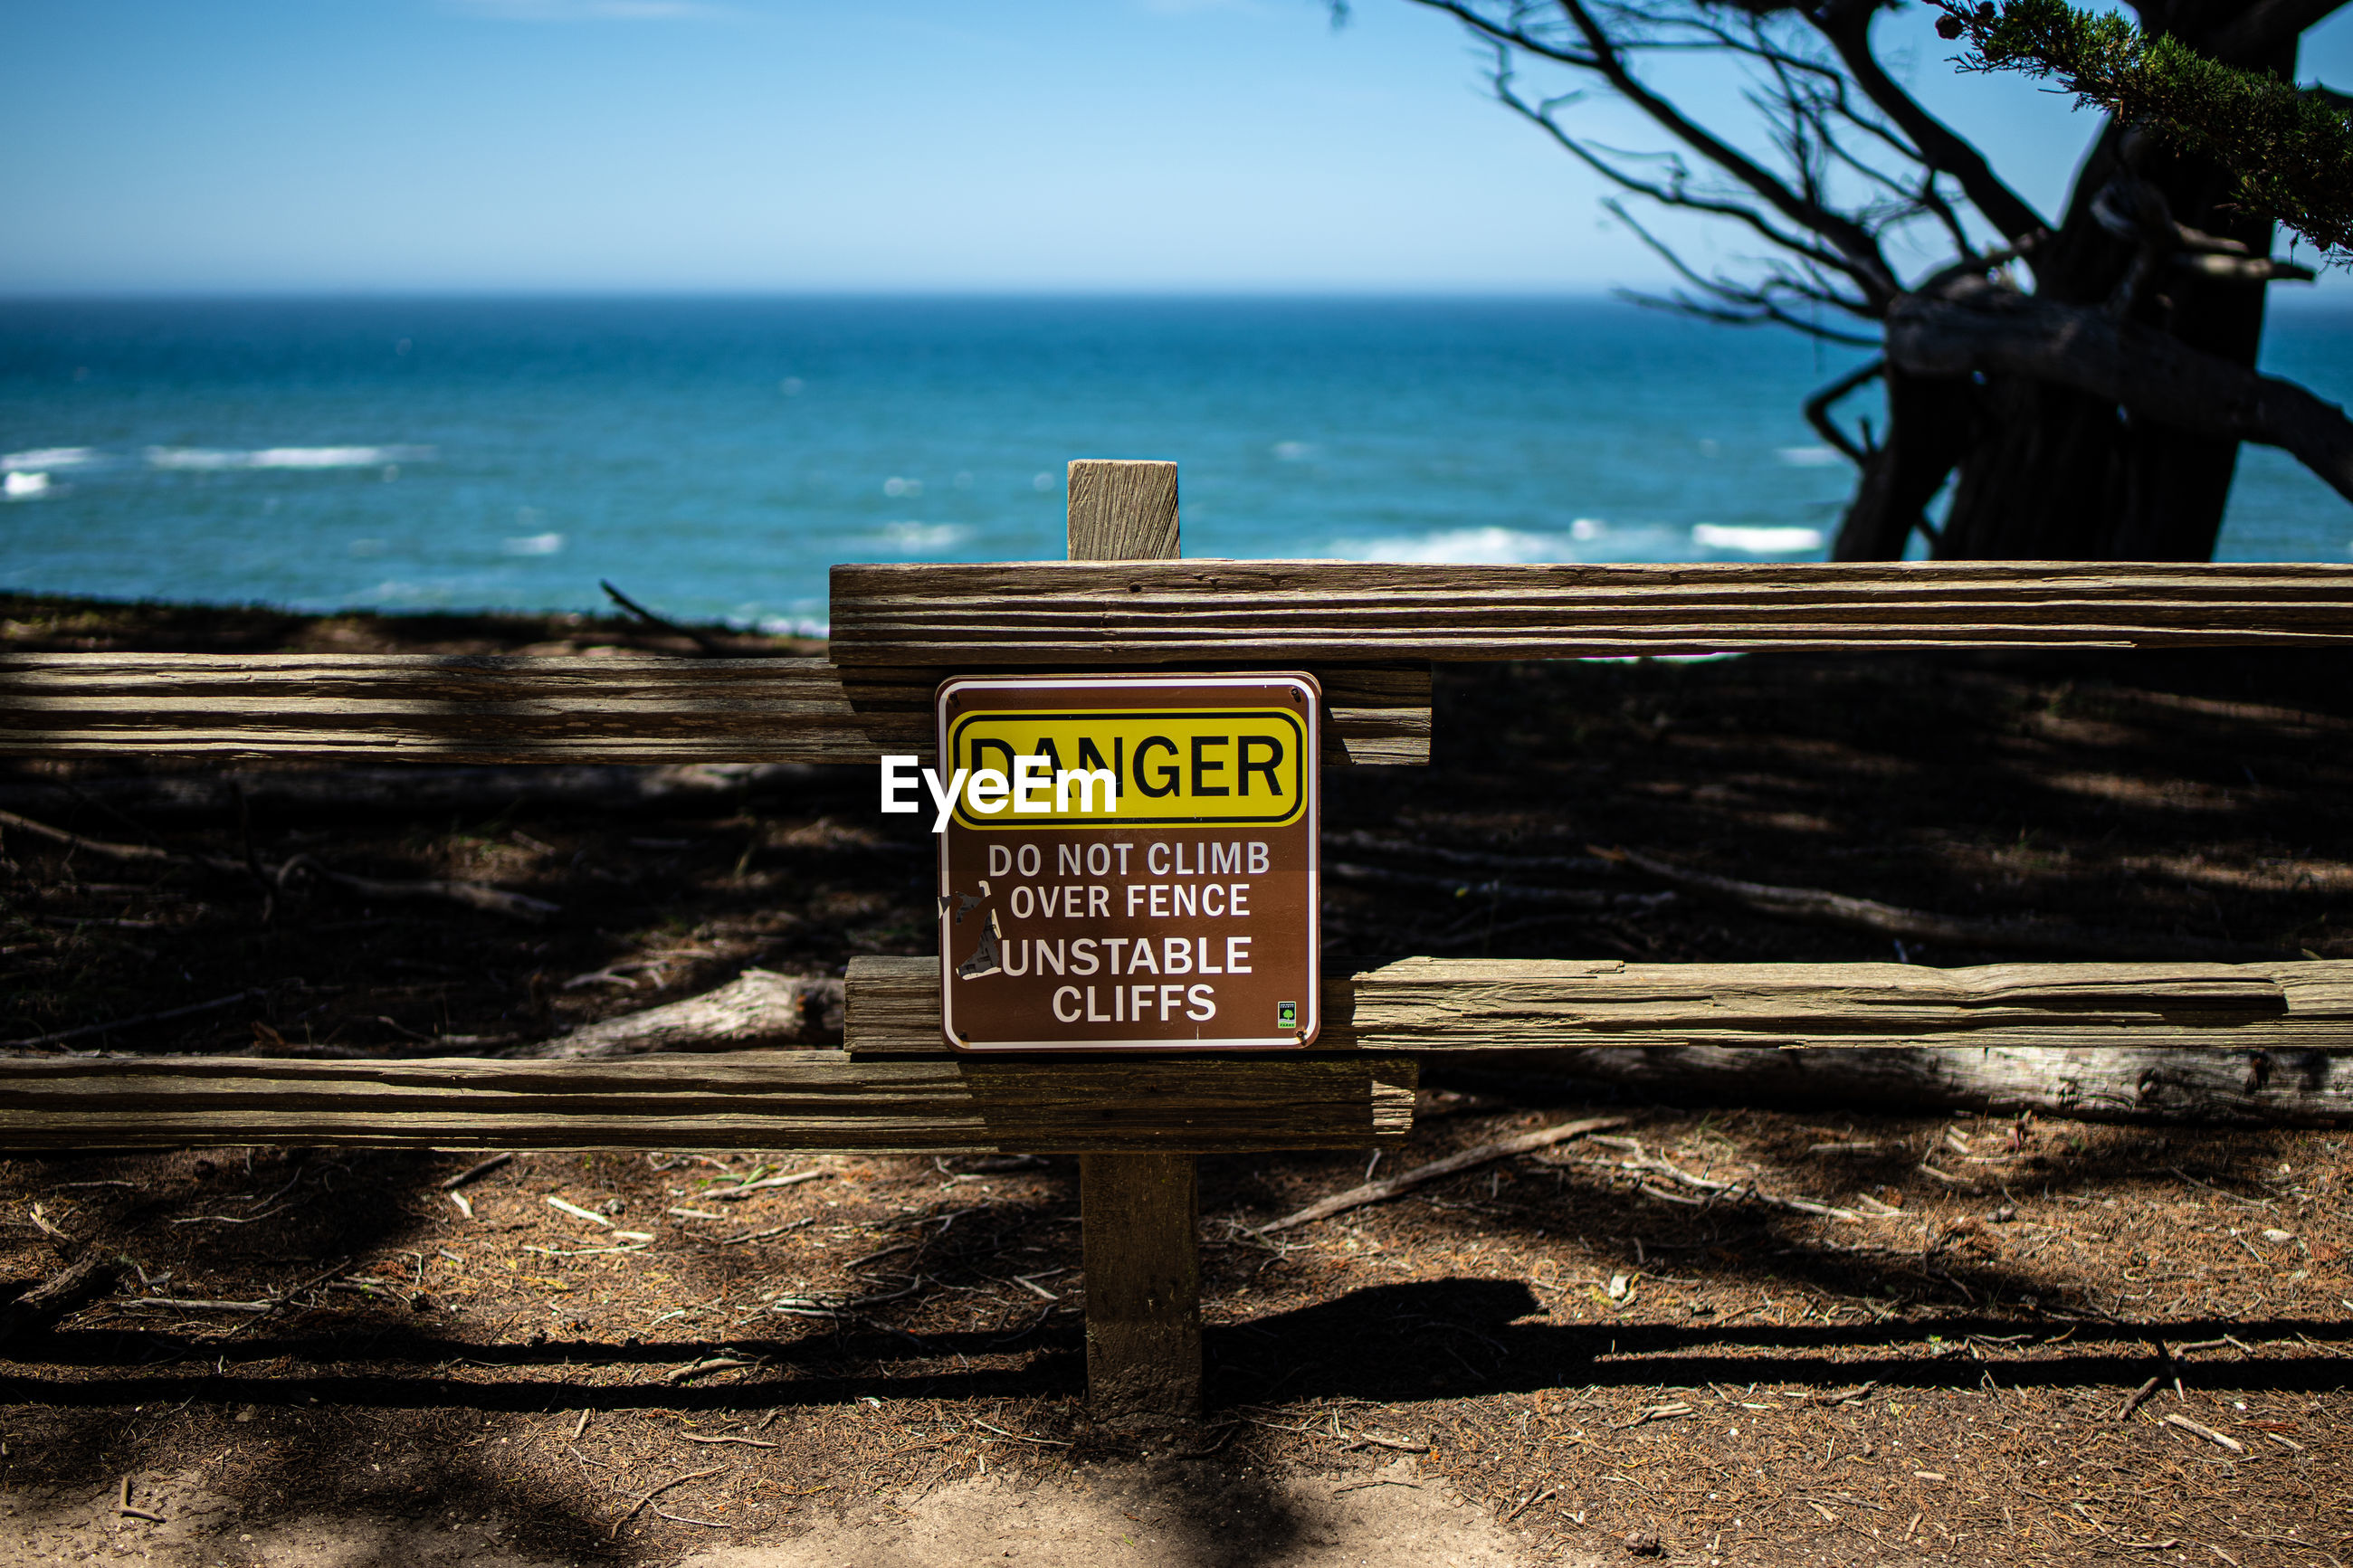 INFORMATION SIGN ON SHORE AGAINST SEA